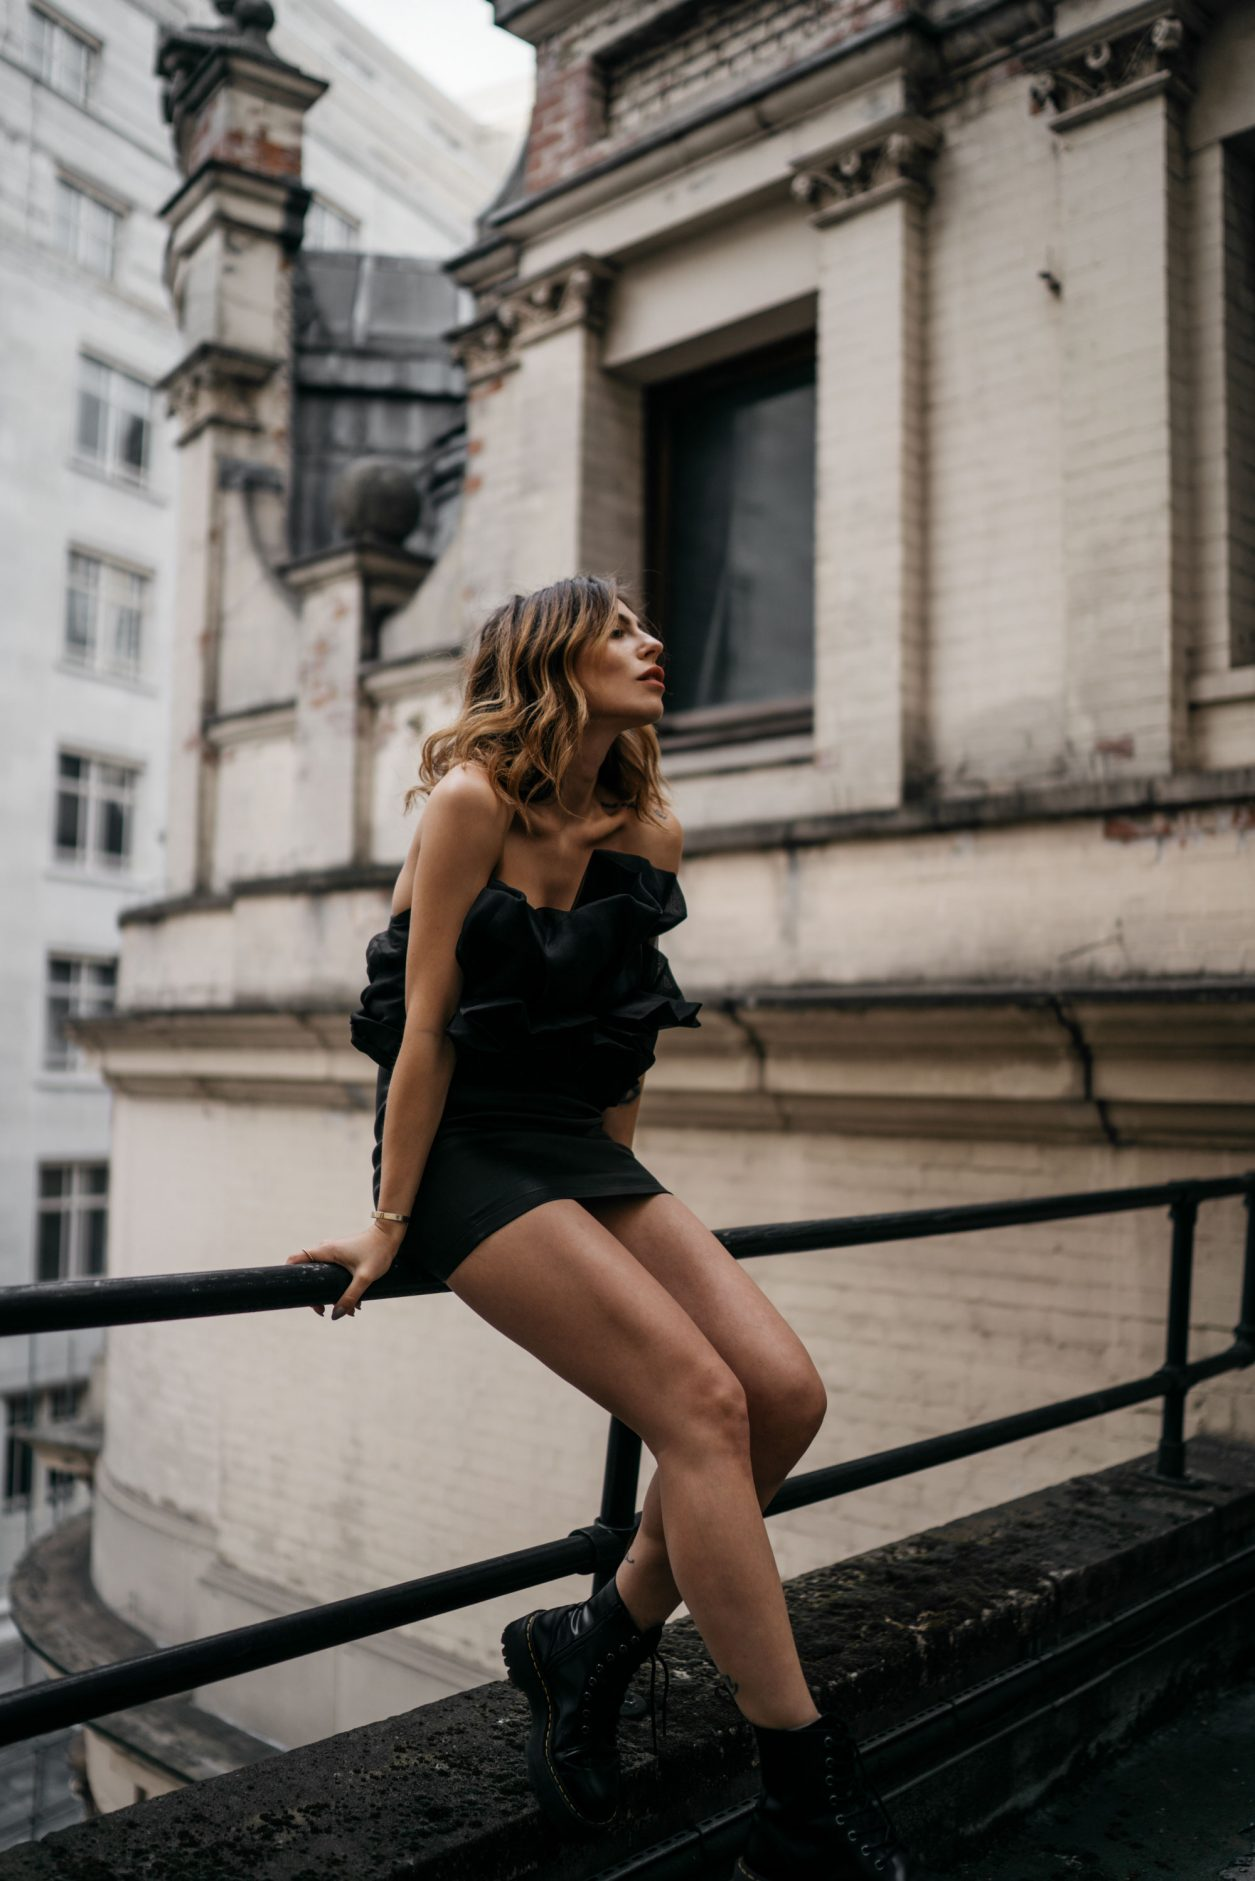 Fashion Editorial Shooting on a London Rooftop | The Savoy | via Masha Sedgwick | little black party dress from Turkish designer Zeynep Arcay | sexy, festive, chic | Parisienne